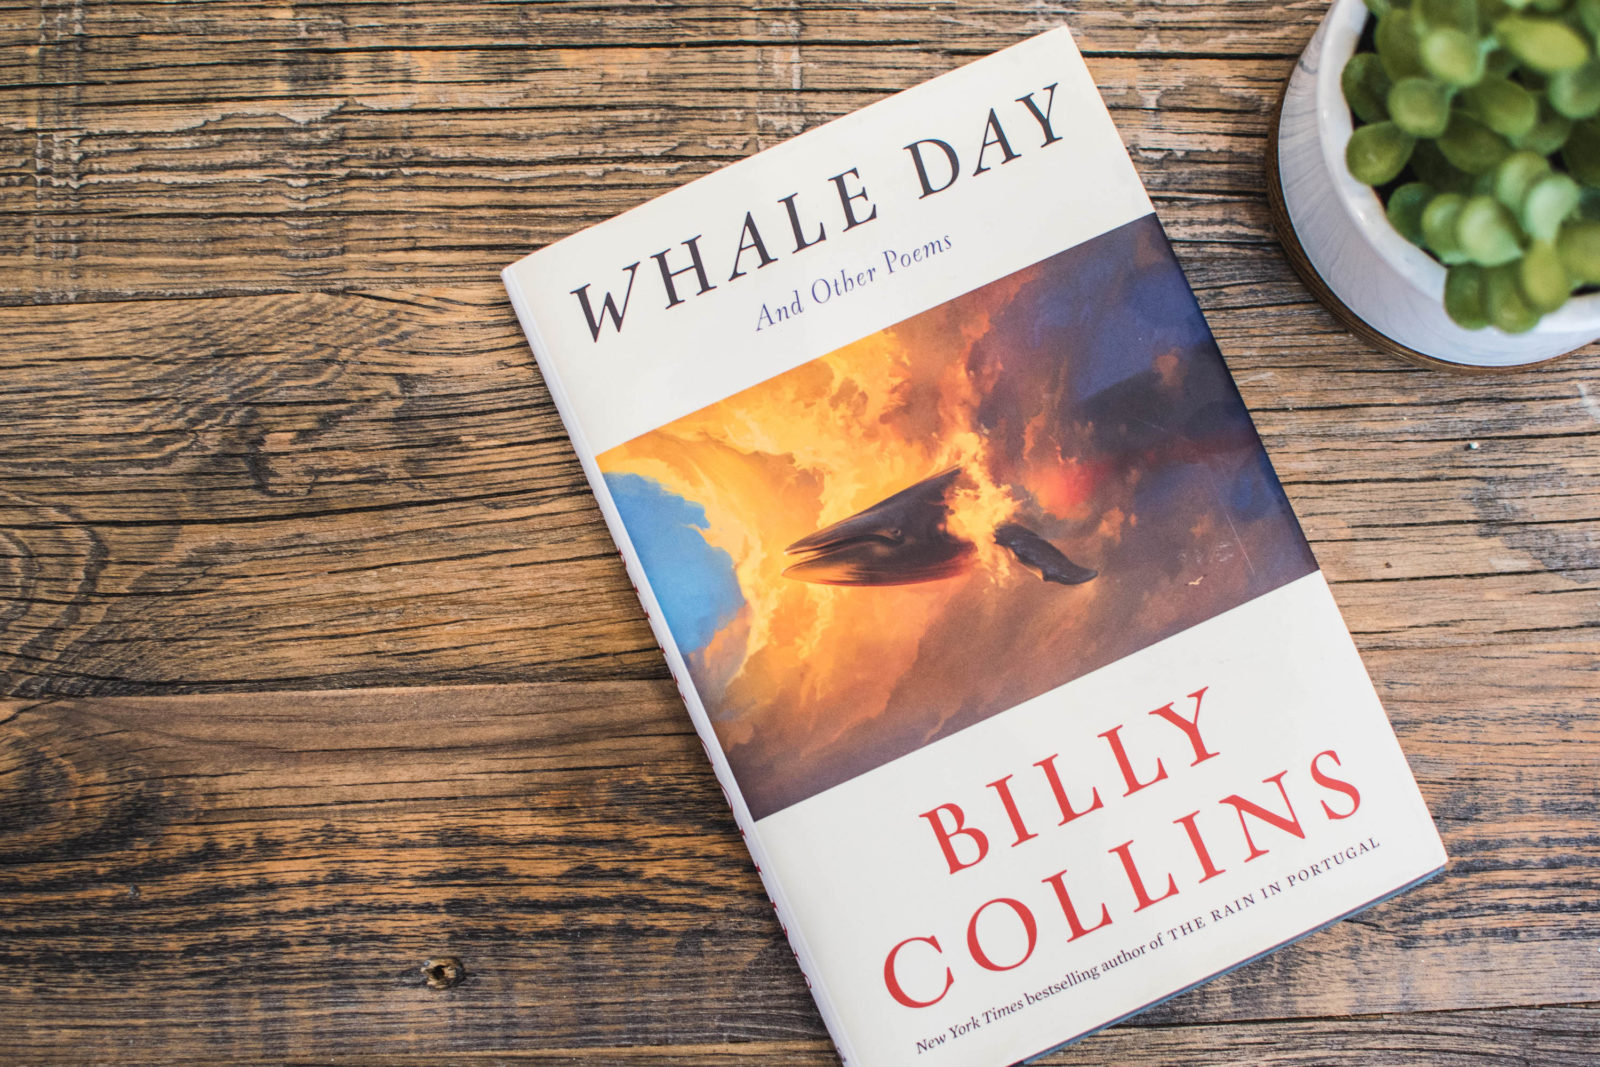 "Billy Collins' newest book, ""Whale Day: And Other Poems"" lays on a coffee table."